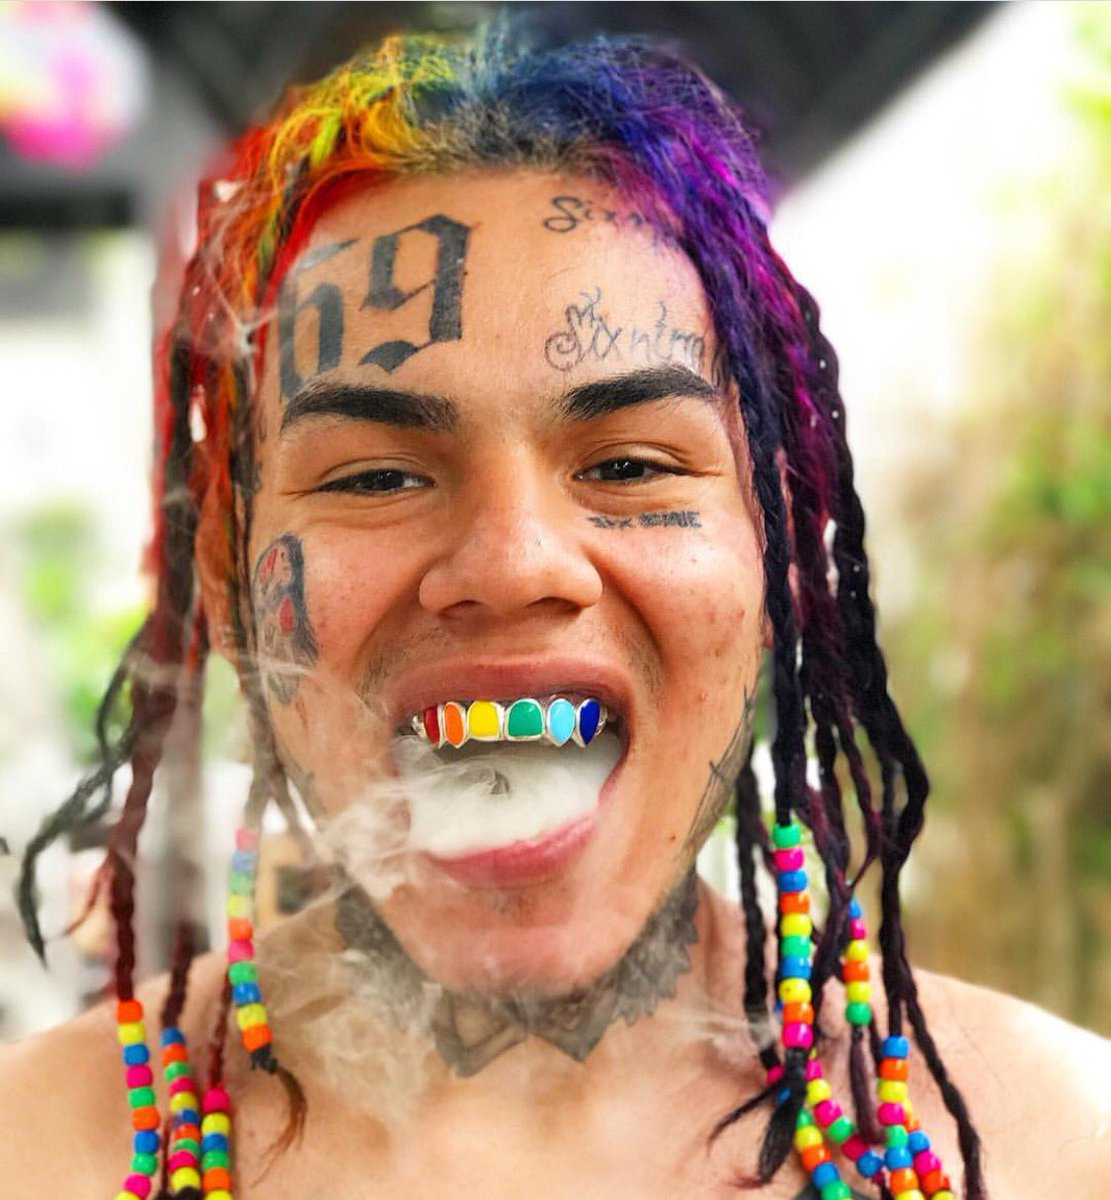 Subcultures & Cults: Tekashi 69 Breaks Boundaries with Unorthodox, Ominous Flow